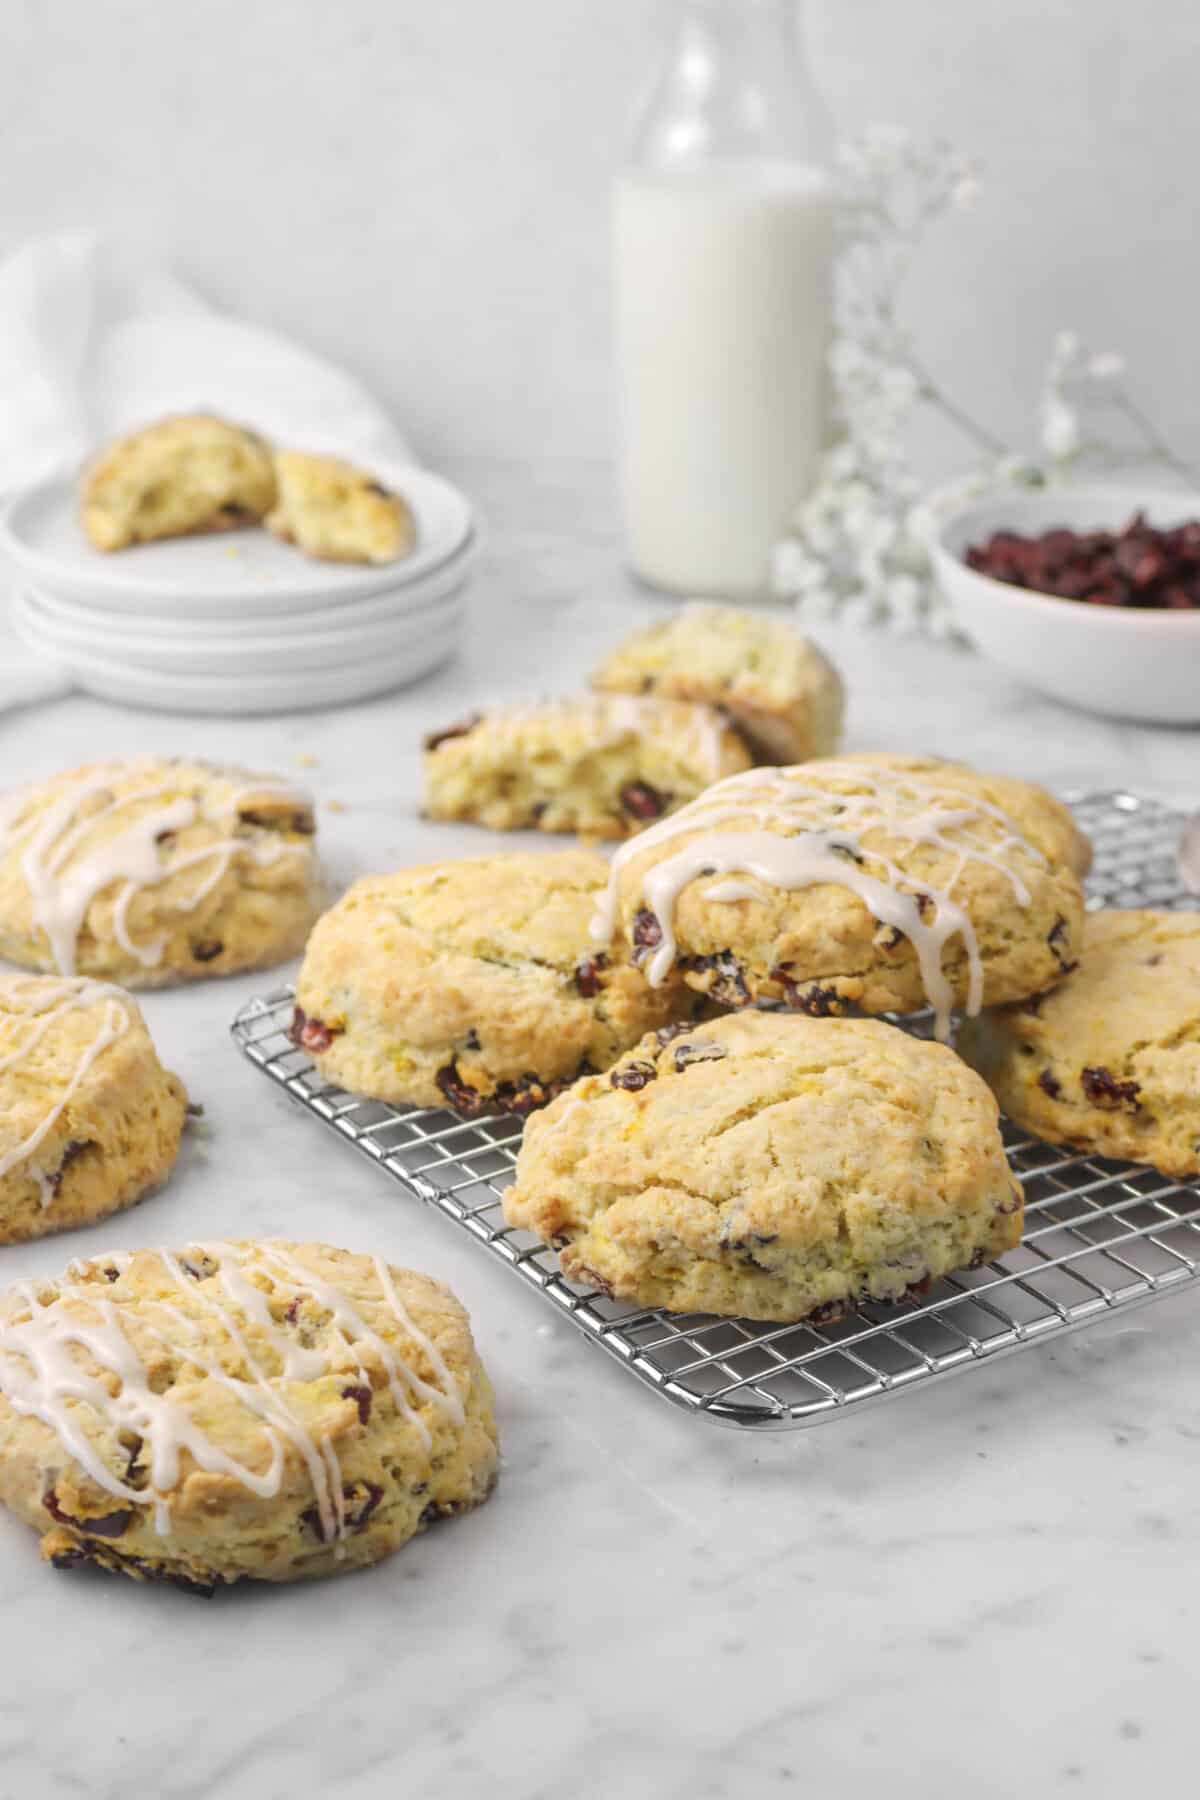 eight scones with two broken open, a bowl of cranberries, flowers, and milk